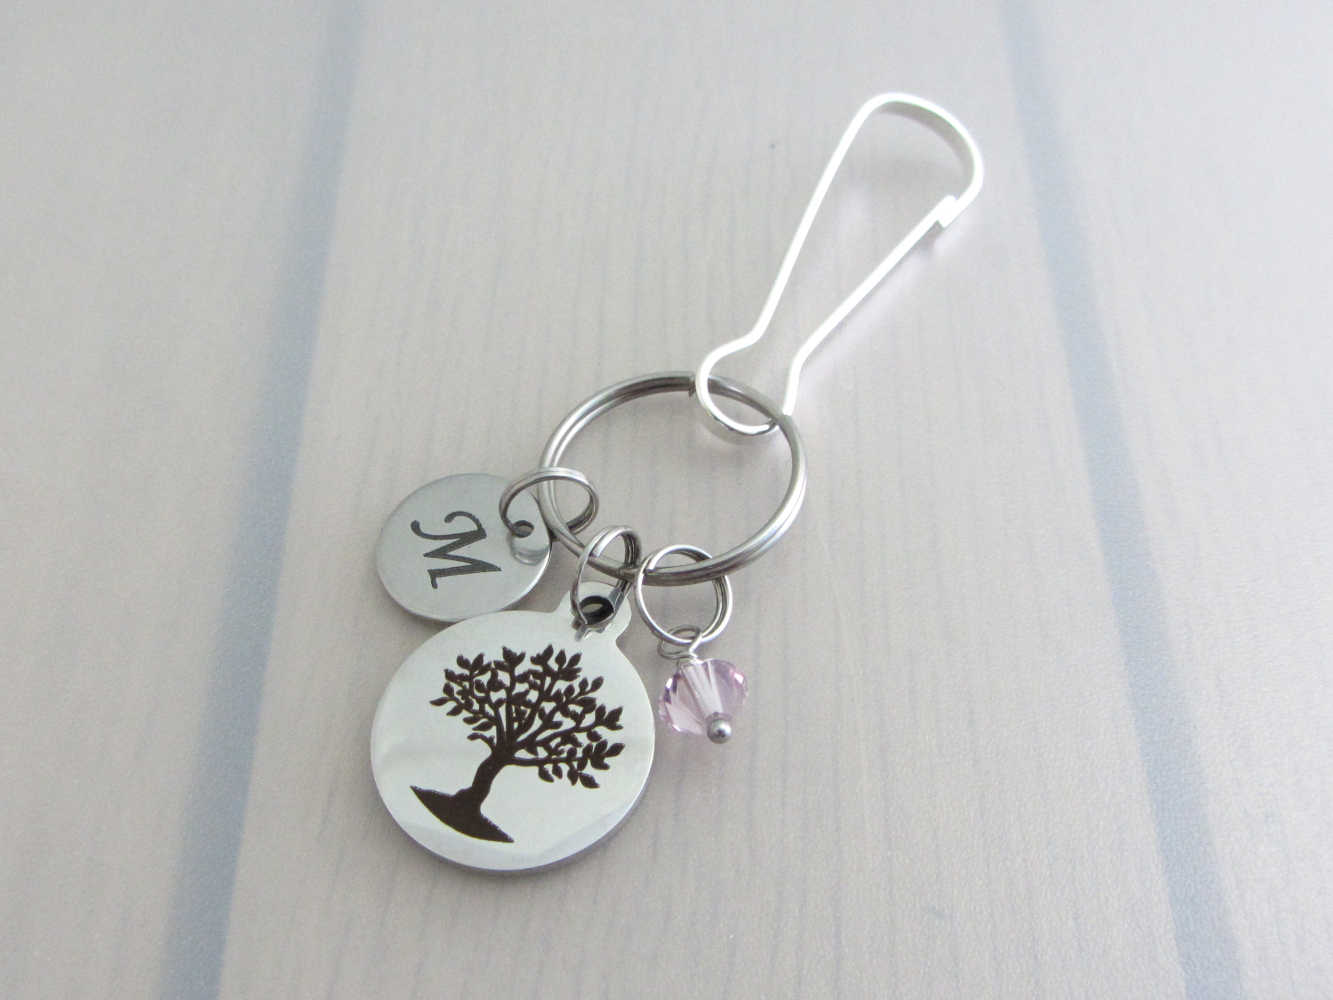 laser engraved capital initial letter disc charm, laser engraved tree charm and a pale purple crystal charm on a bag charm